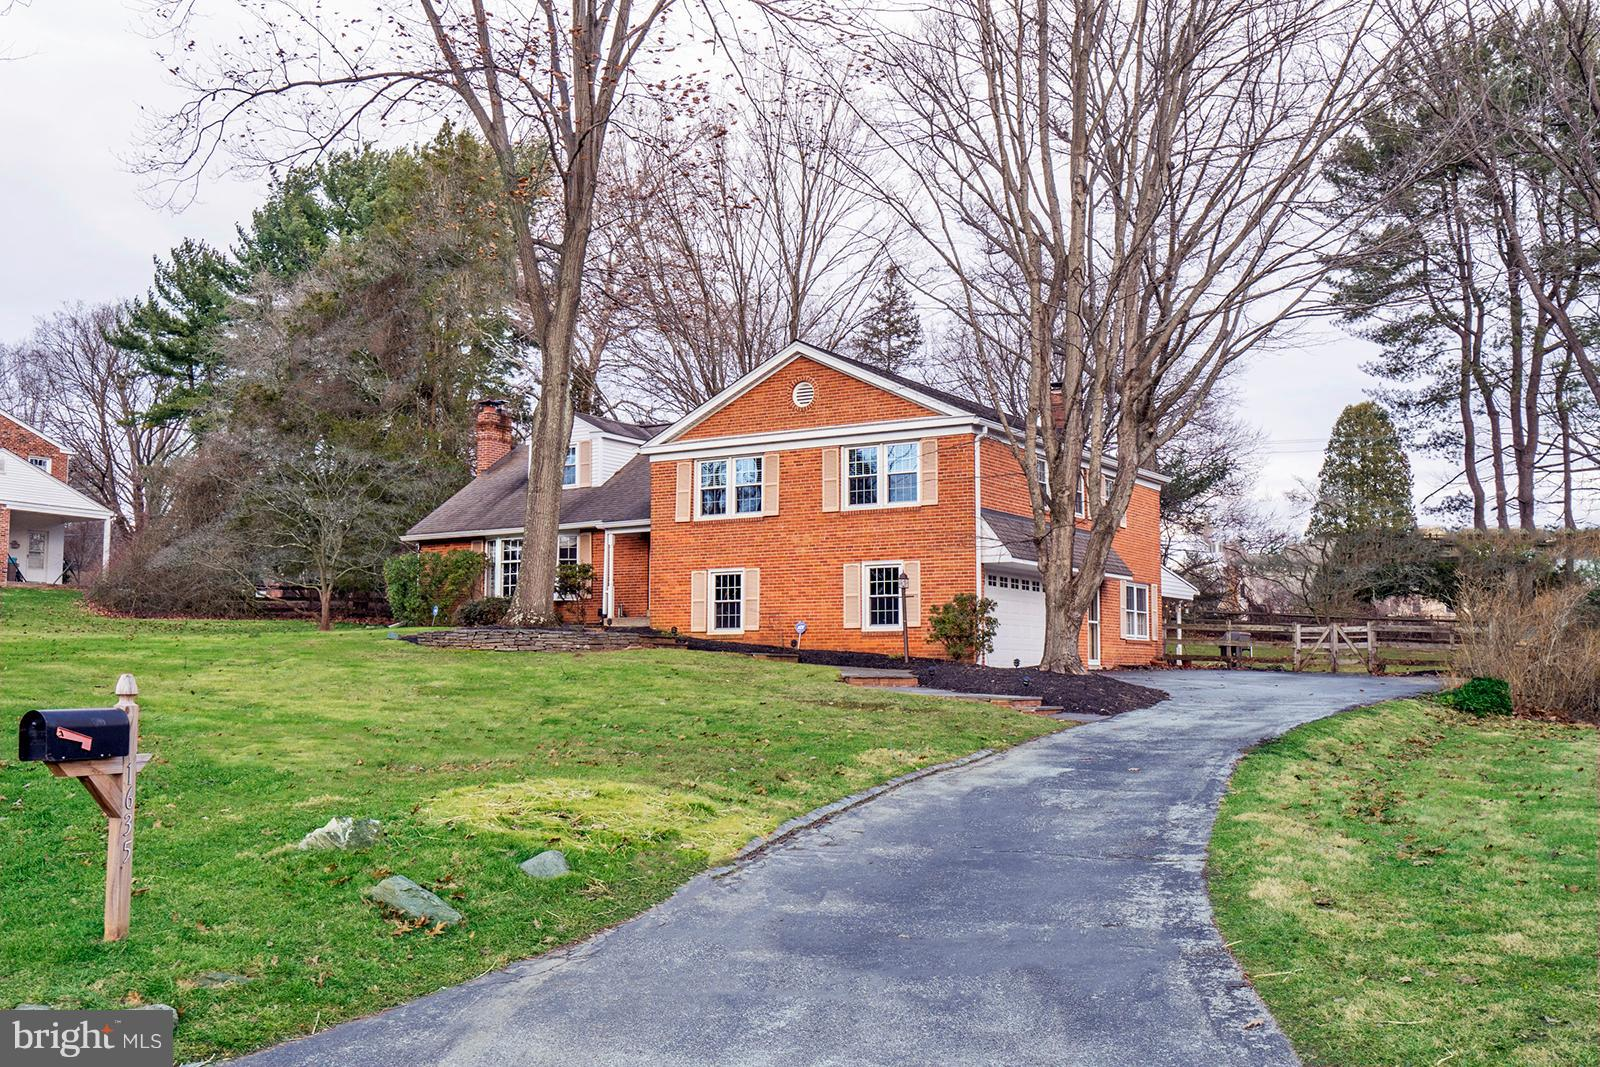 Lovely all brick Colonial Split-level located directly across from Valley Forge Park National Park (3,500 acres with jogging, walking and biking trails plus many other recreational uses)! Walk up the flagstone walkway to the covered front entryway. Through the front door you will be welcomed by the  entrance foyer with double coat closet. The living room features a fireplace, built-in bookcases, and a bow window with sunsetting views of the park. There are hardwood floors throughout and a formal dining room with chair rail and crown molding. The kitchen features QuakerMaid cherry cabinetry, Corian countertops, newer stainless-steel appliances including a double oven, Pella picture window and seating that faces the fenced-in backyard. The lower level offers a family room with an additional brick fireplace, outside exit to covered porch, laundry, access to 2-c garage and yes, there is a basement unlike many other split-level homes. The 2nd floor features a Master bedroom with full bath, stall shower and a walk-in closet; two additional bedrooms and hall bath complete this level. The 3rd floor has a large bedroom and access to the attic for additional storage. Other great features include: a Honda 6800watt generator, alarm system, french drain & sump pump plus much more. You must see this beautifully maintained home in a perfect location.